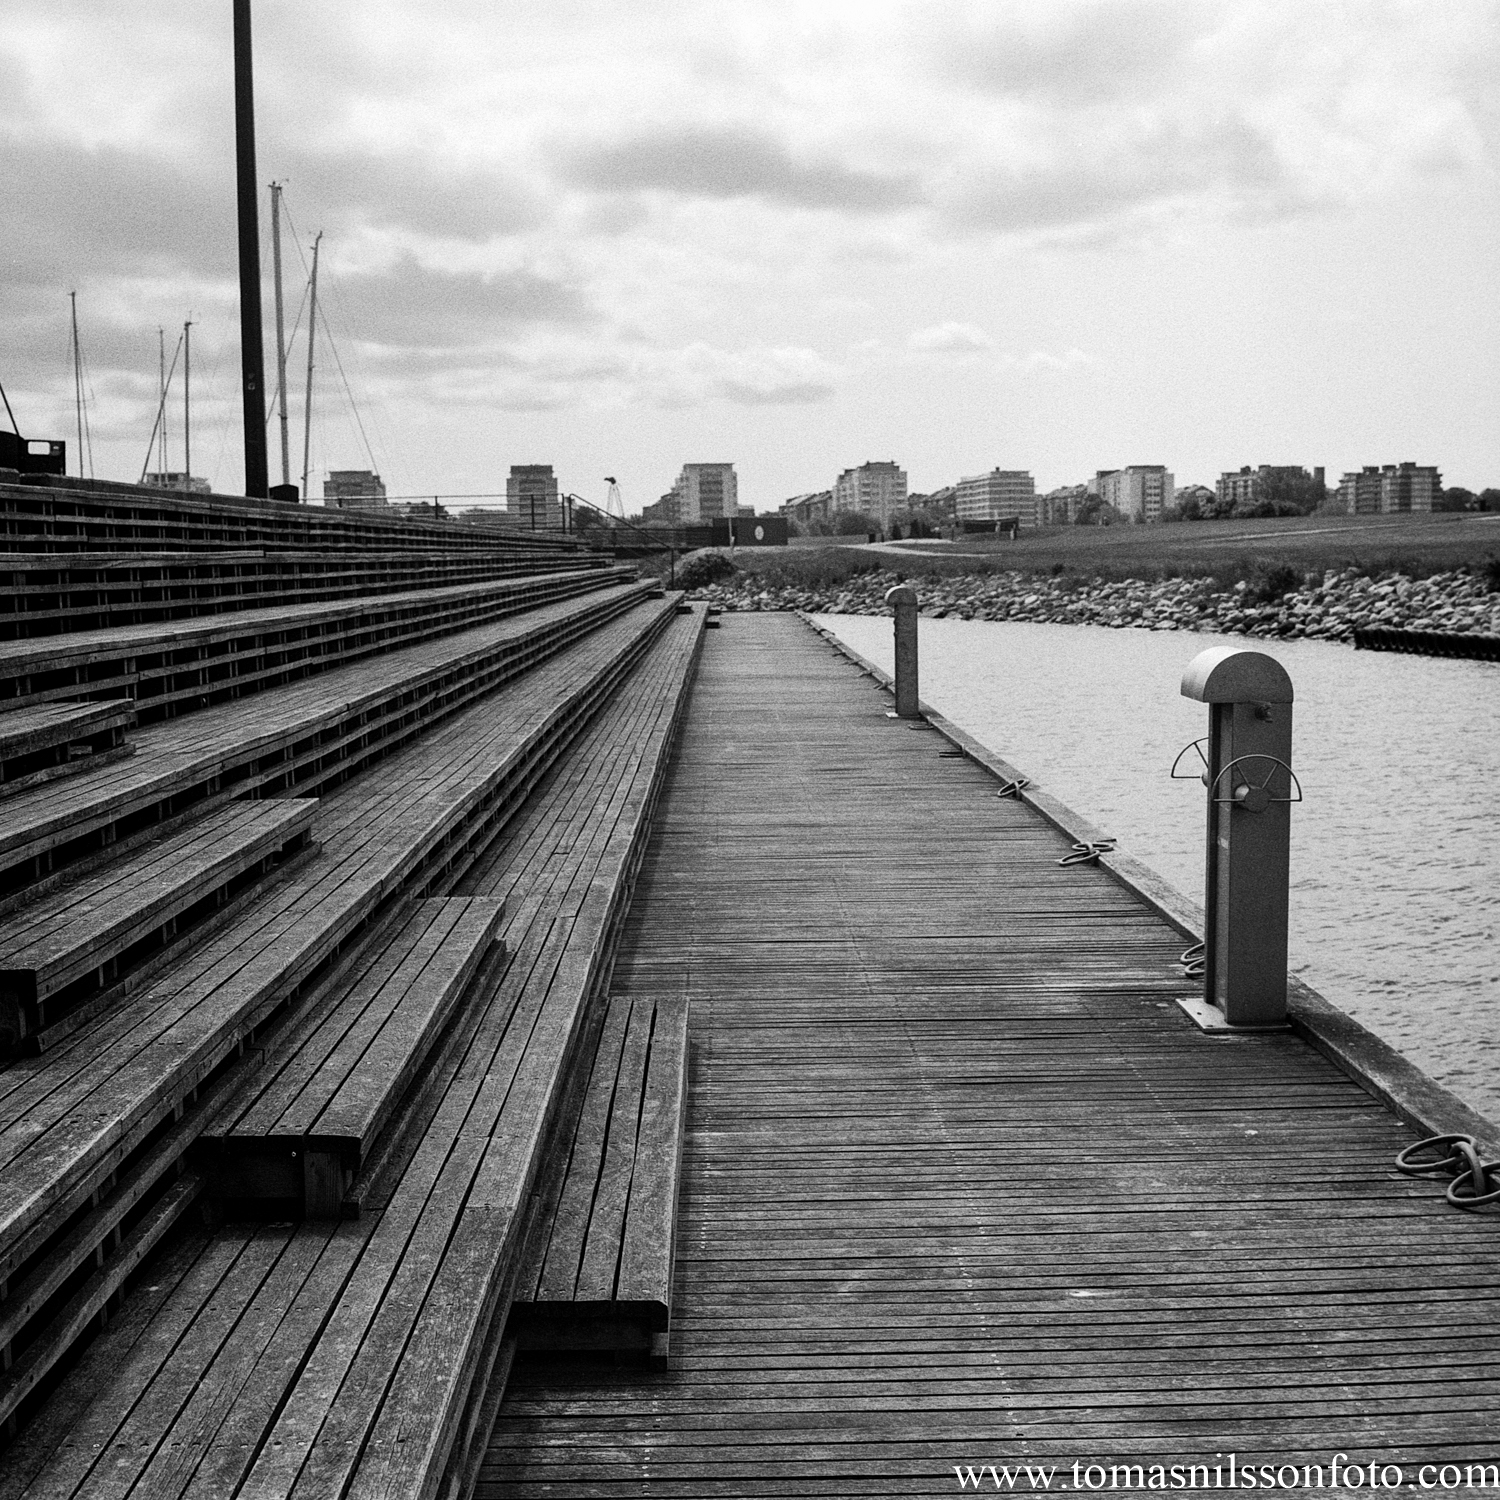 Day 156 - June 05: Stairs by the water